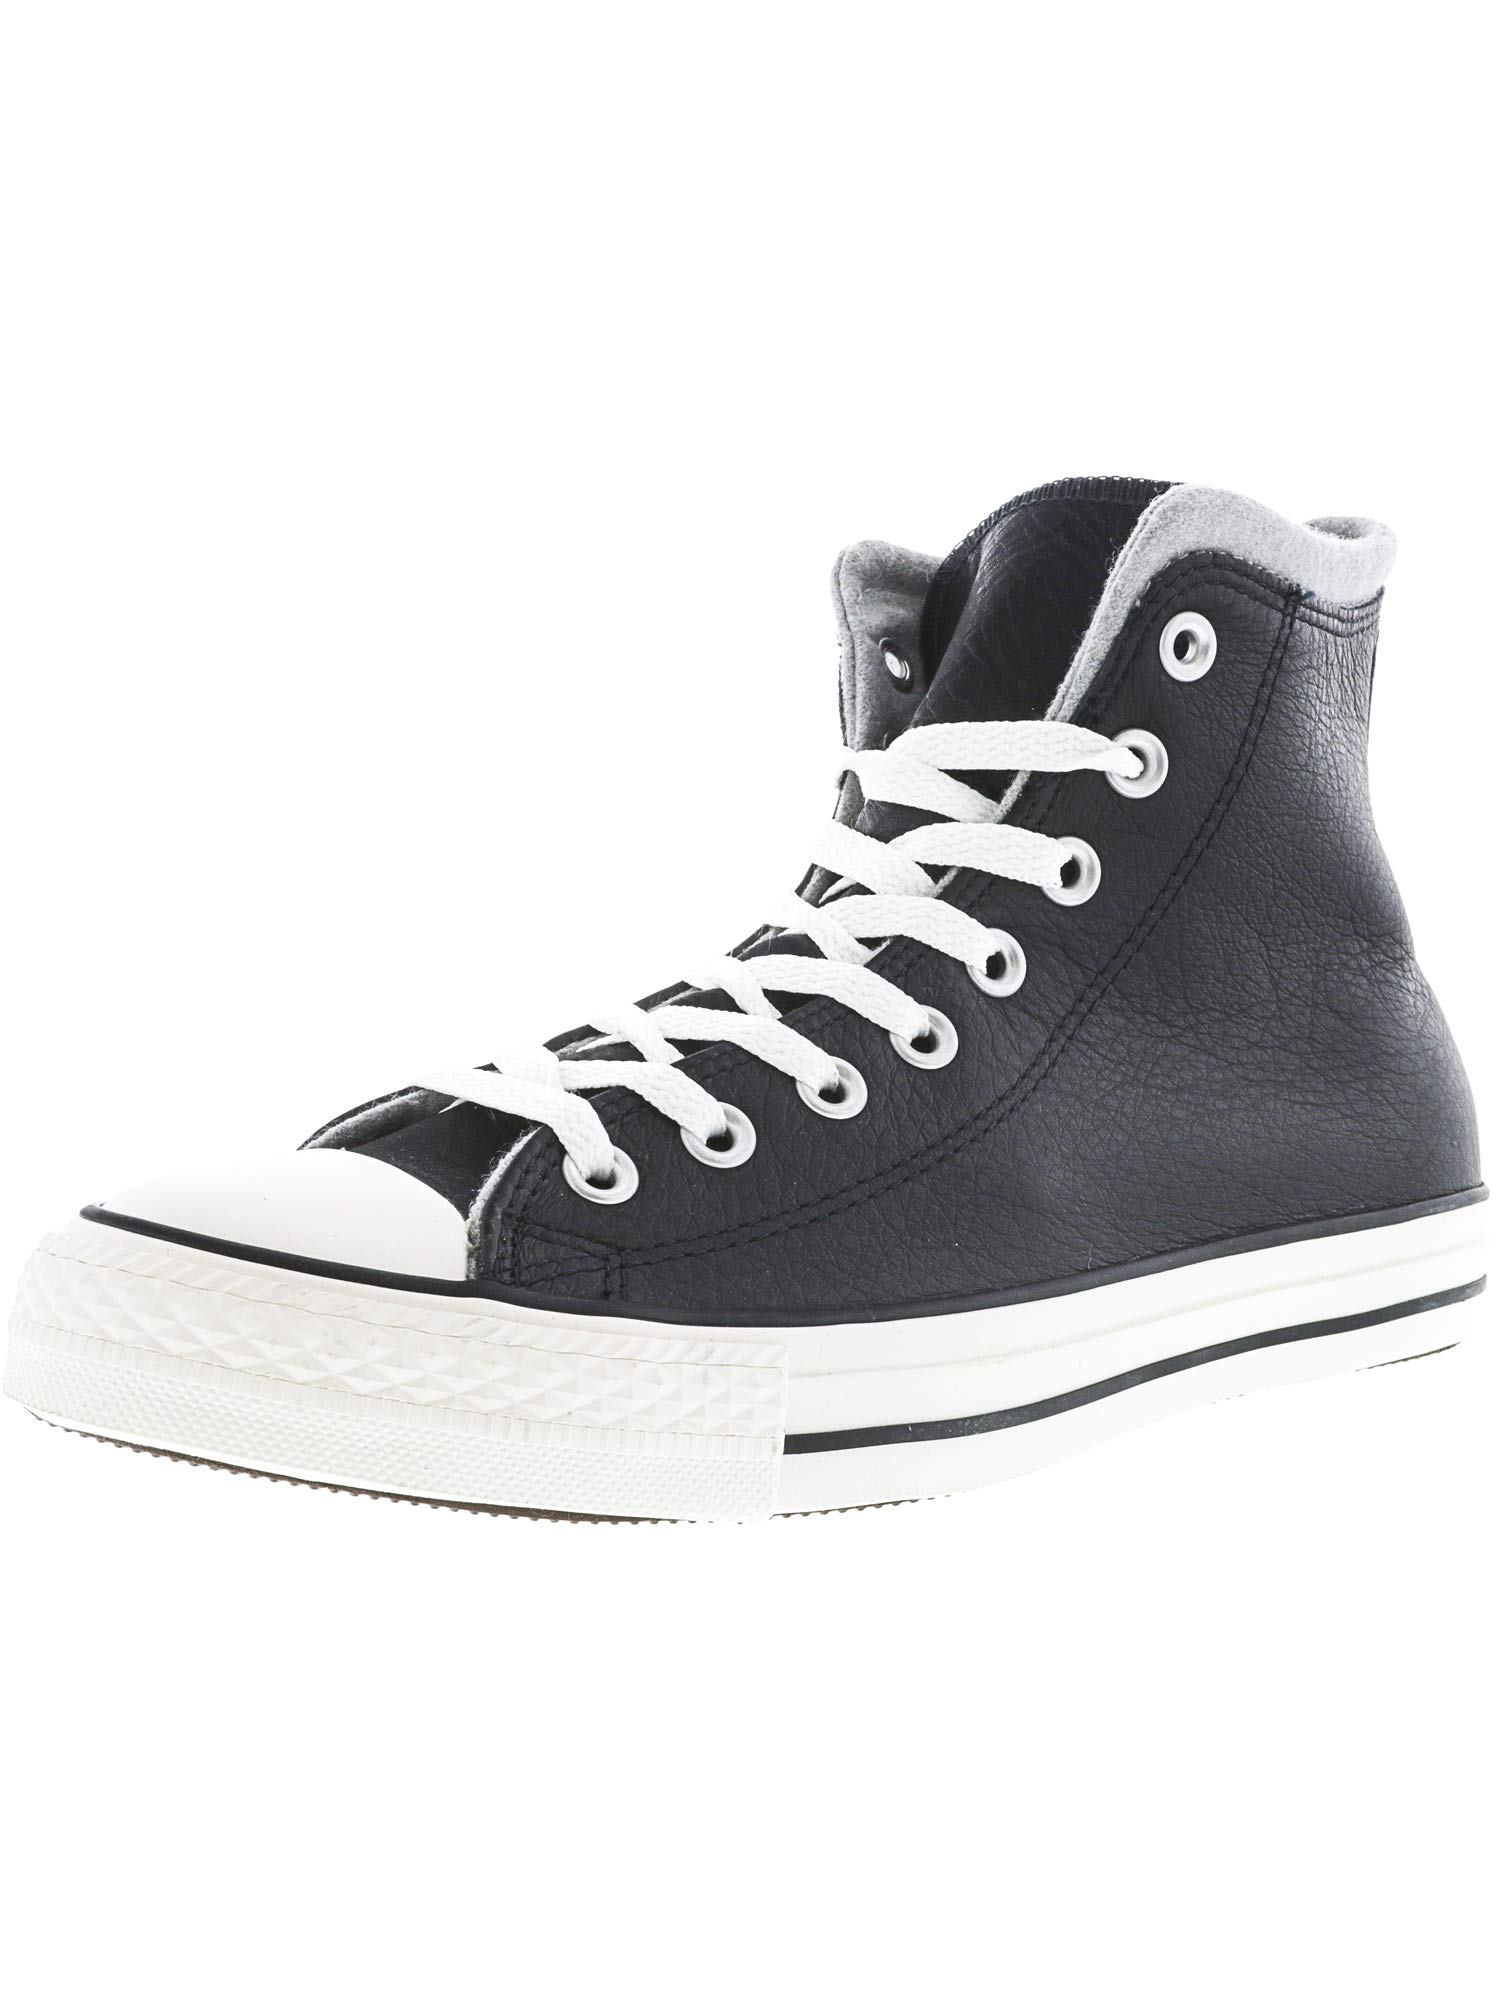 266f916cb2ba Converse Chuck Taylor All Star Hi Black Egret Dolphin High-Top ...